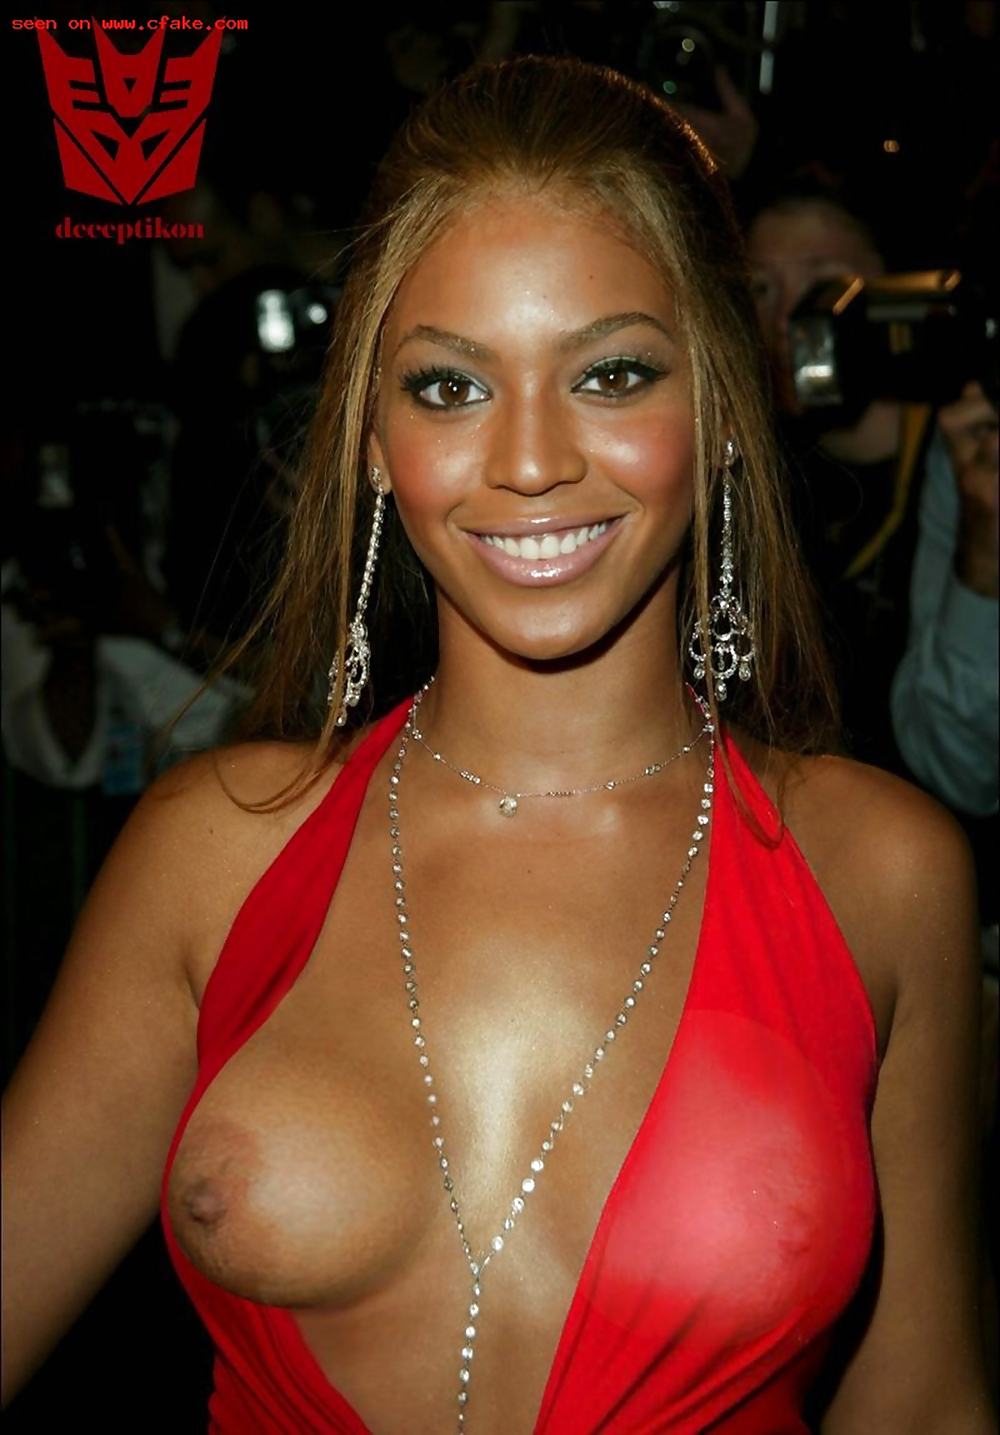 Swimsuit Beyonce Nude Ass Pics Pictures